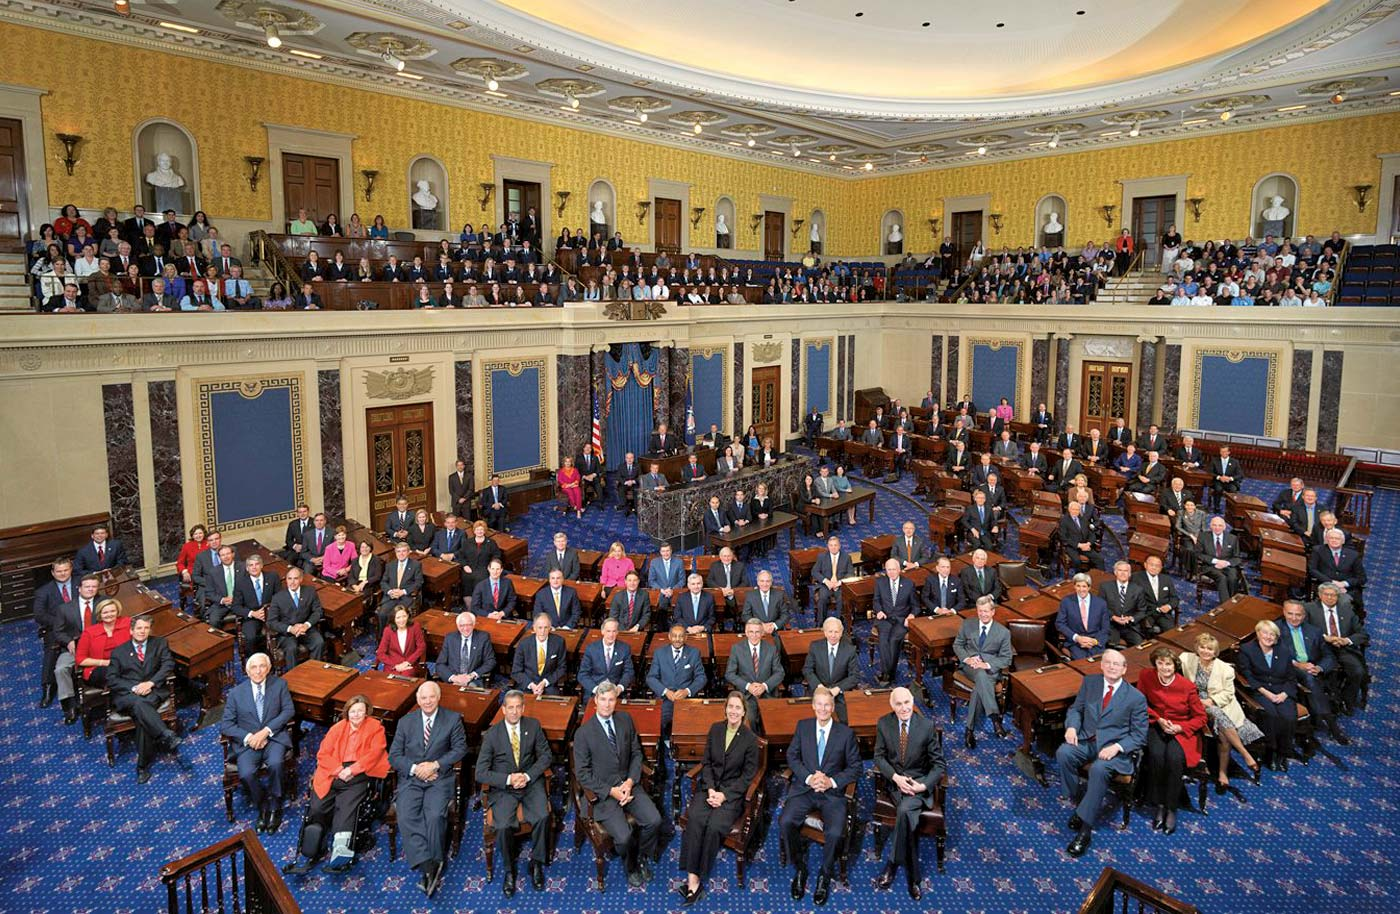 111th US Senate class photo, Credit: Wikimedia Commons